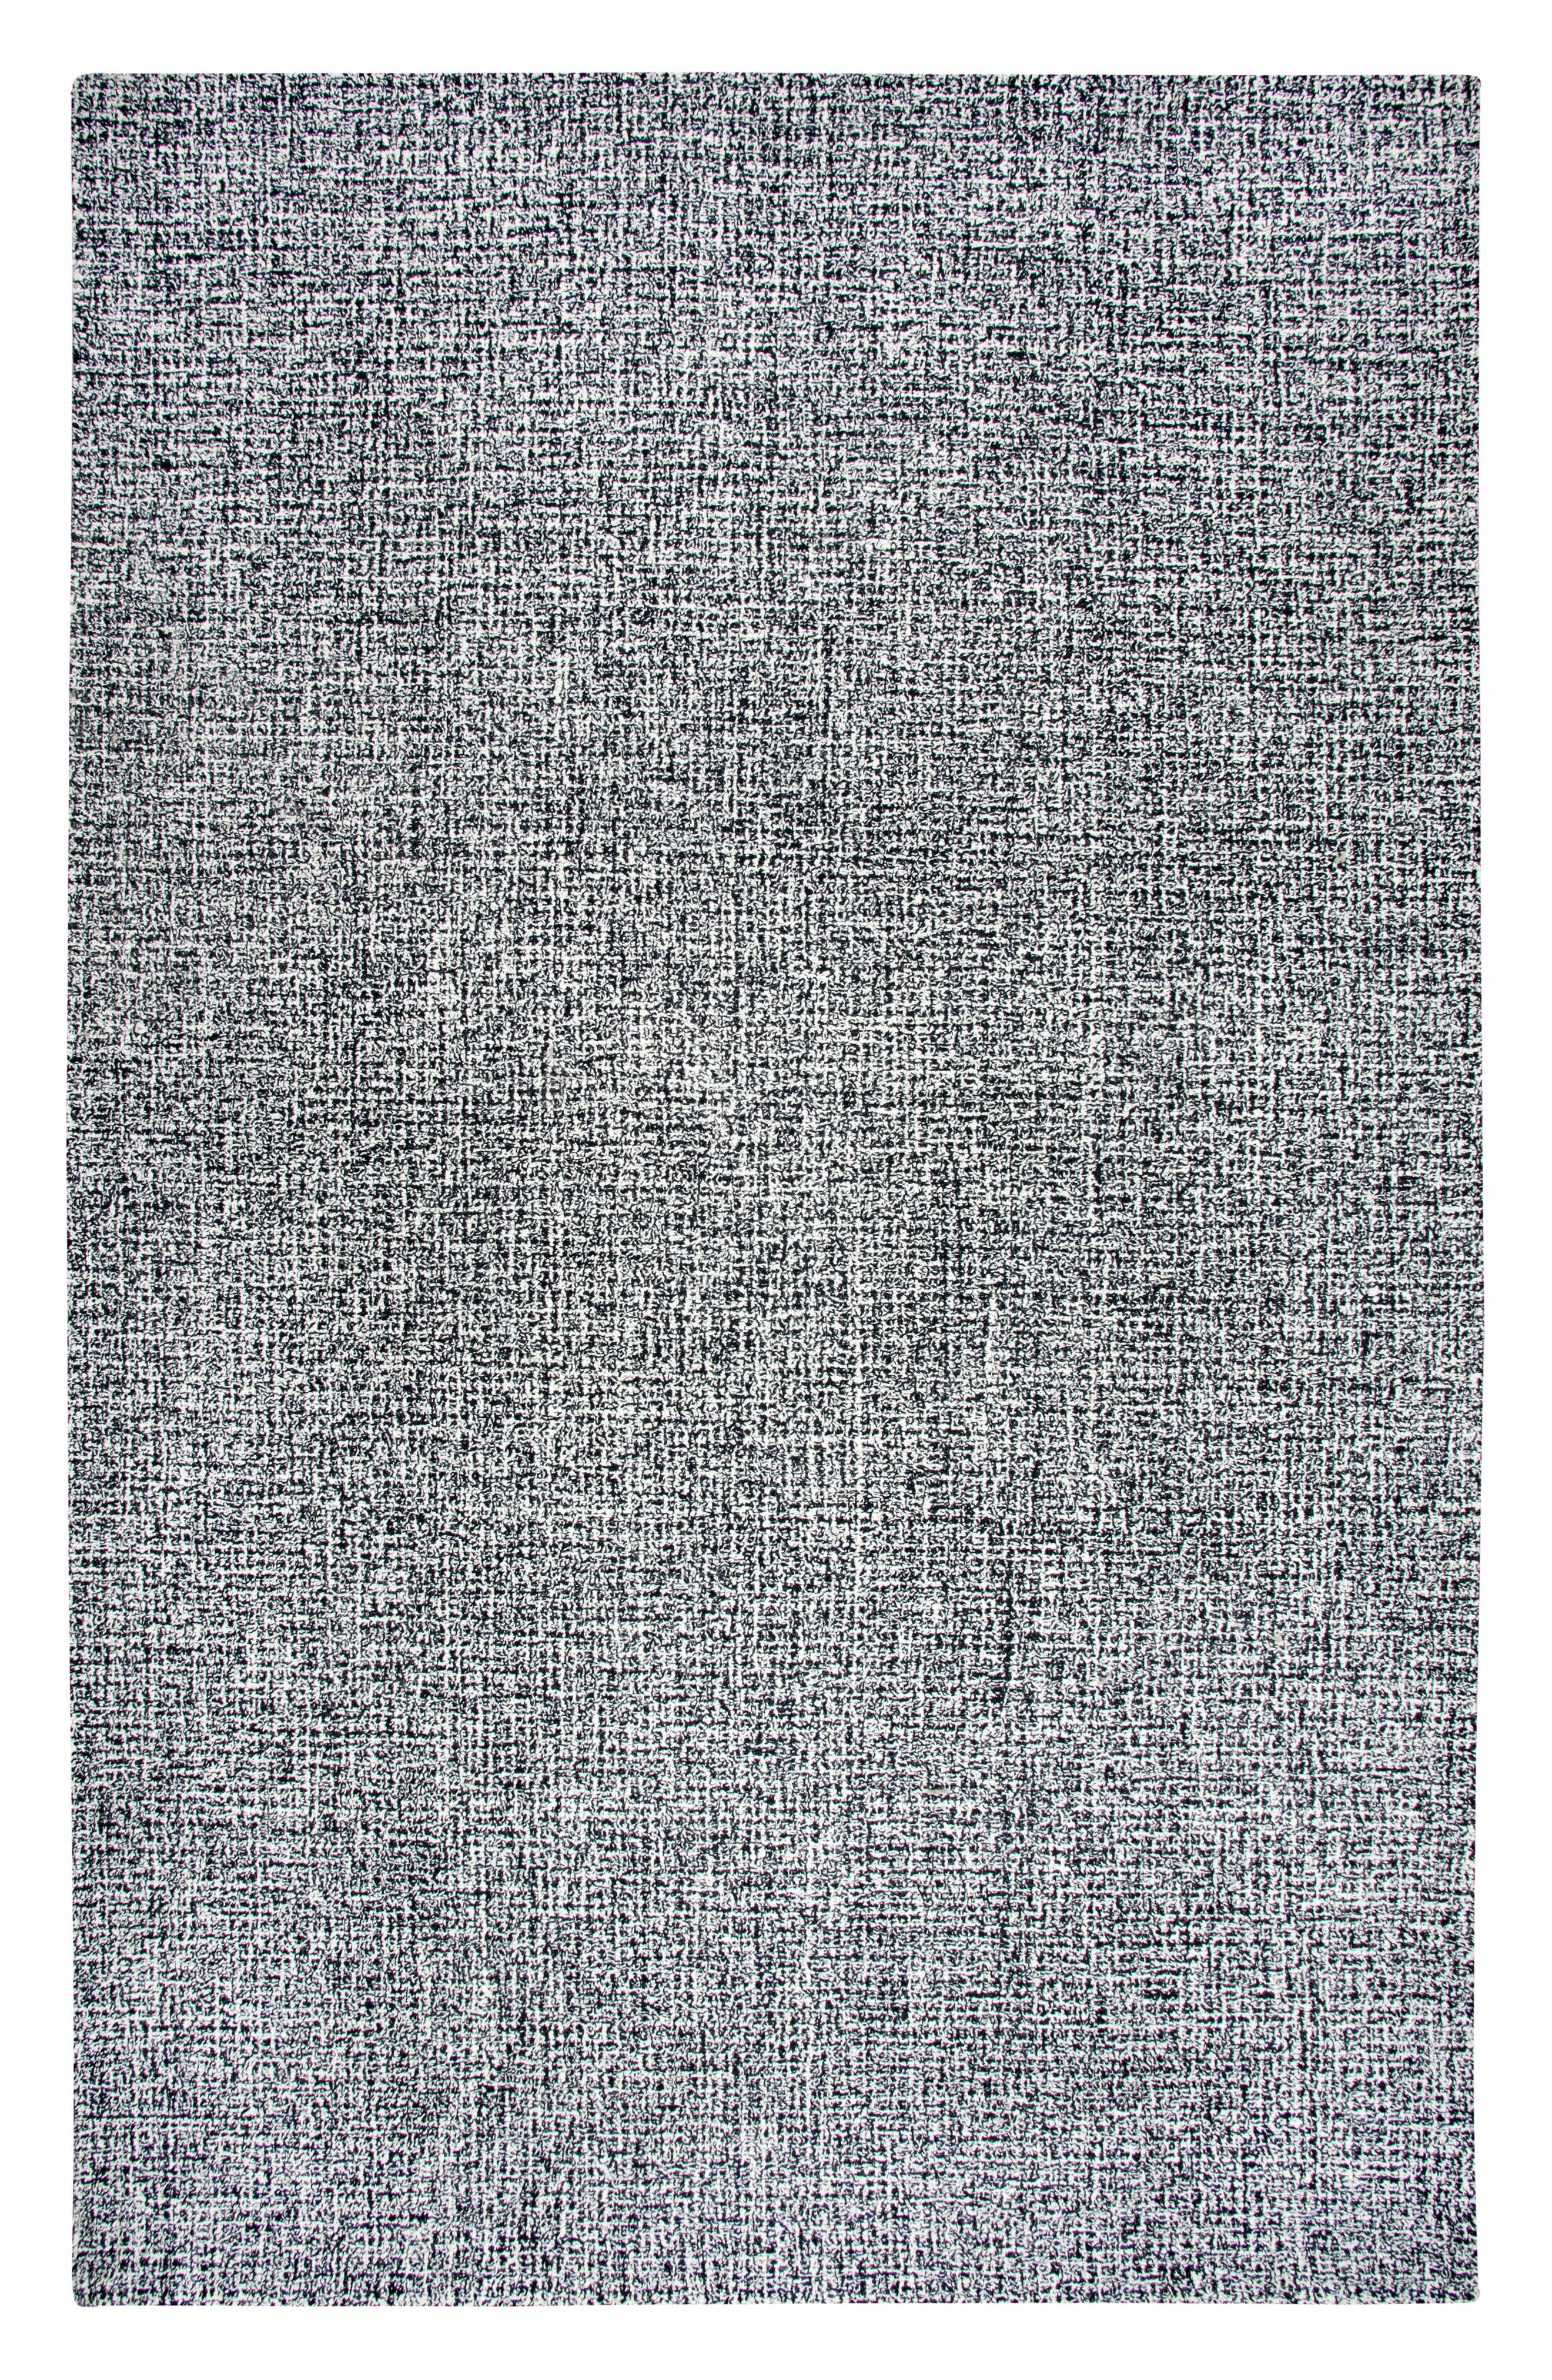 Palisades Rug,                         Main,                         color, Black/ White